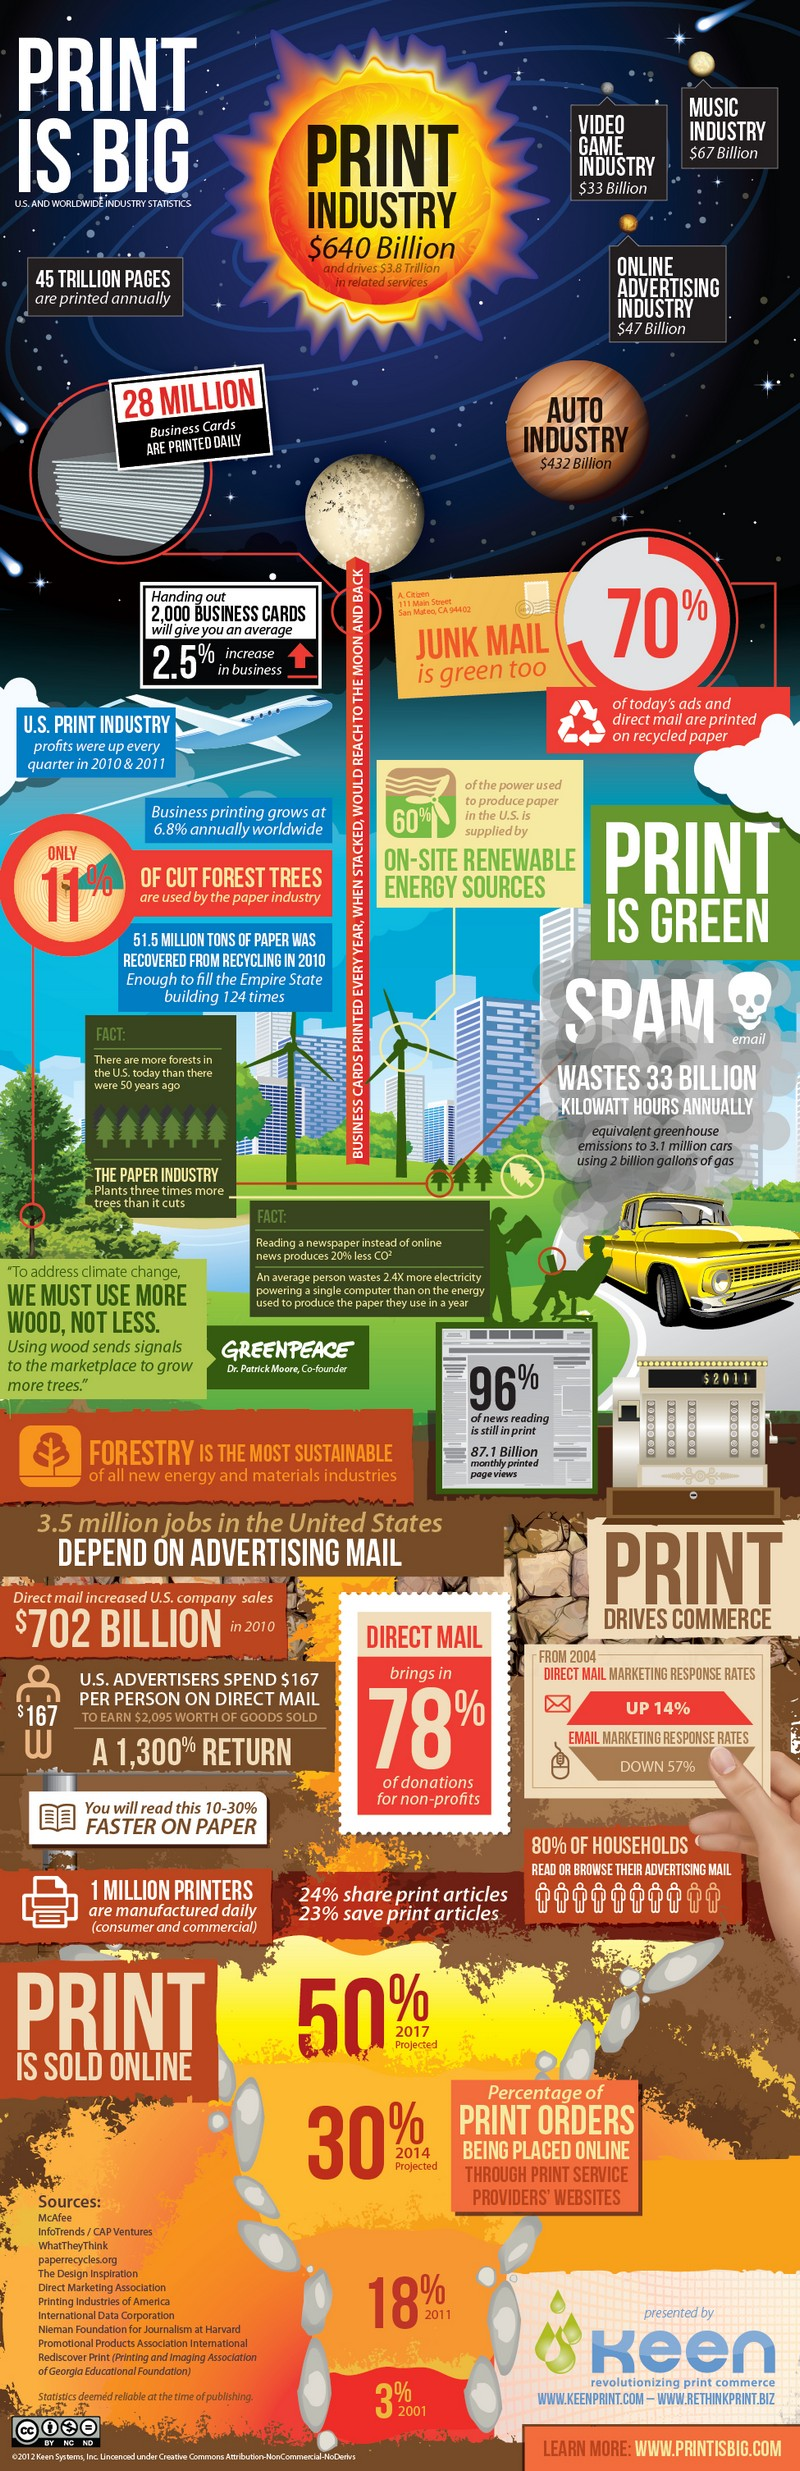 Print Is Big Us And Worldwide Industry Statistics Infographic